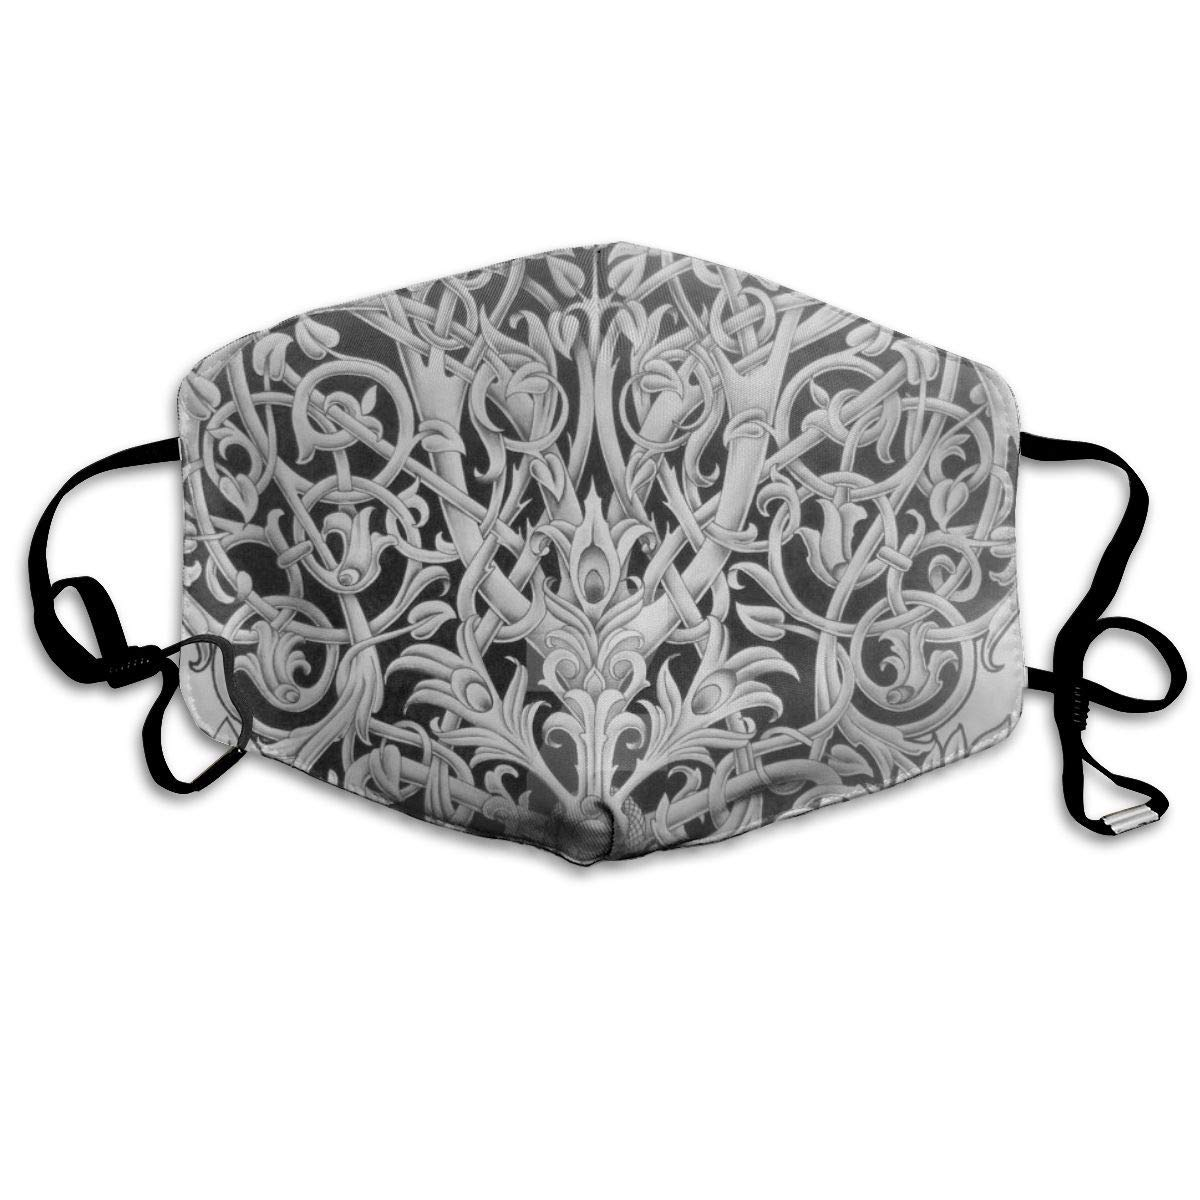 Bdwuhs Mascarillas Bucales,Boca Máscara Dust Mask for Women and Men Tree of Life Printed Foldable Mask Face Mask Anti-Dust Mouth Mask